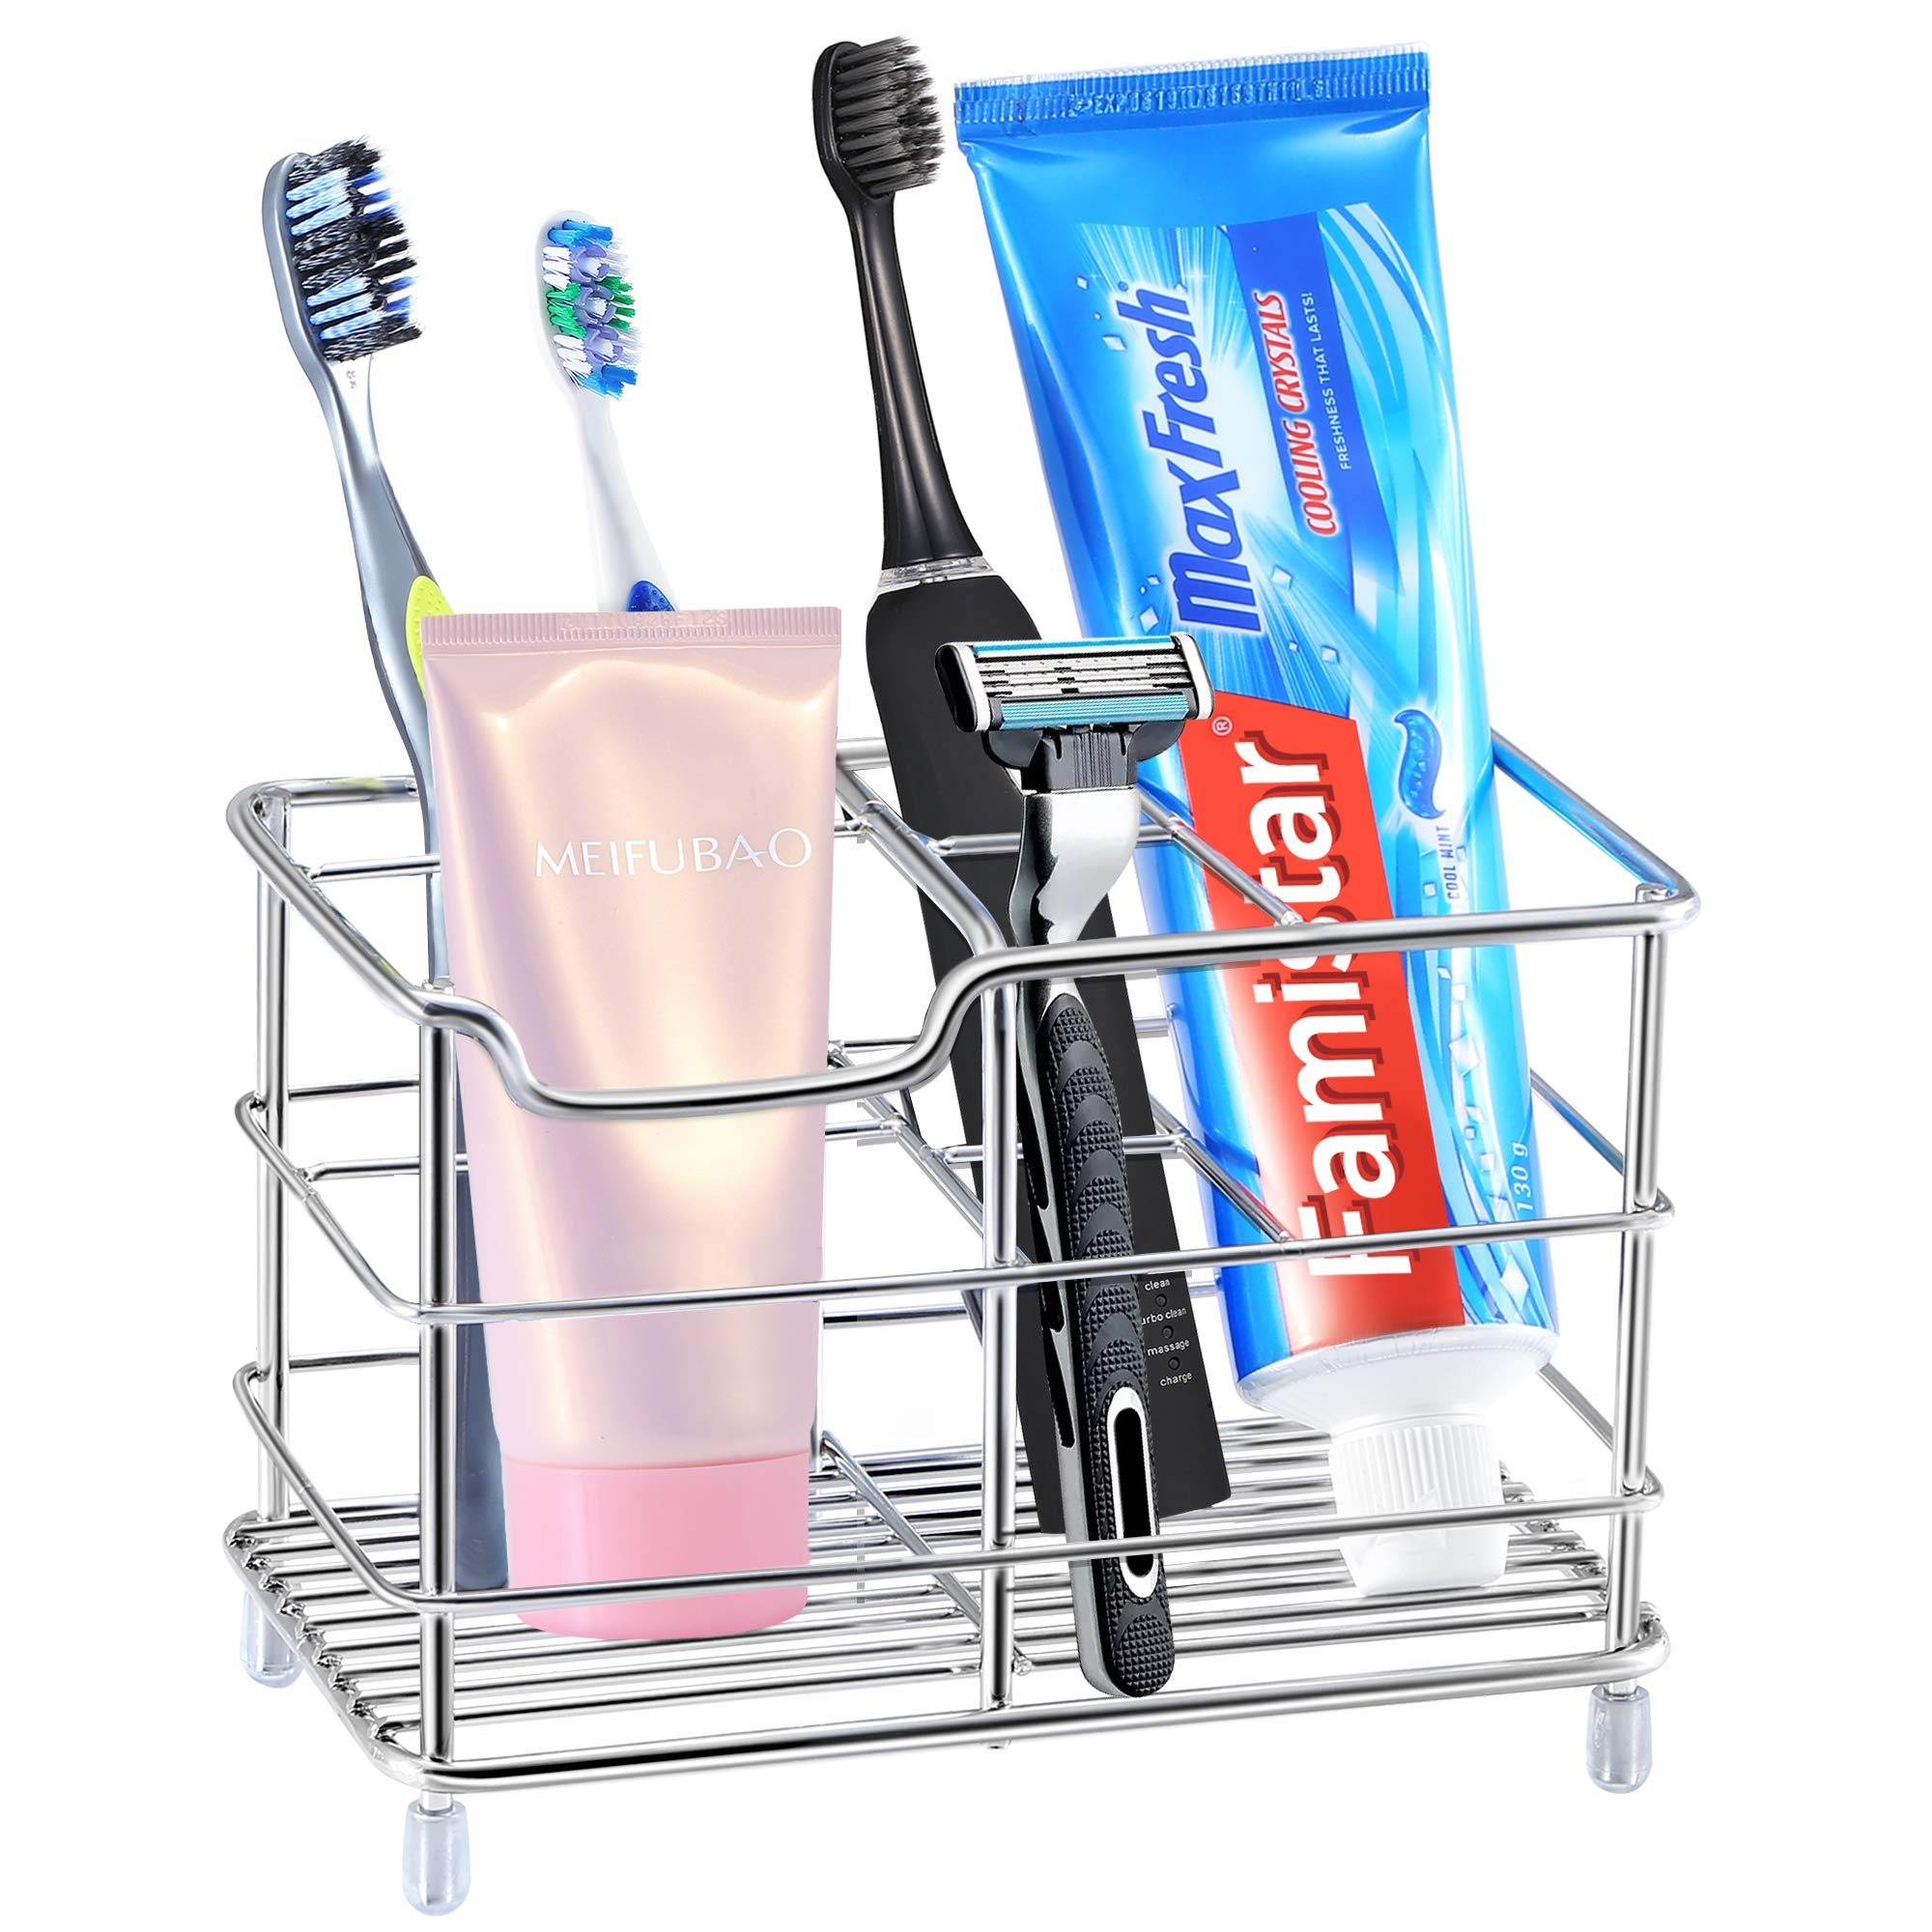 Famistar X-Large Toothbrush Holder, Stainless Steel Bathroom Storage Organizer Stand Rack - Multi-Functional 6 Slots for Electric Toothbrush, Toothpaste, Cleanser, Comb, Razor